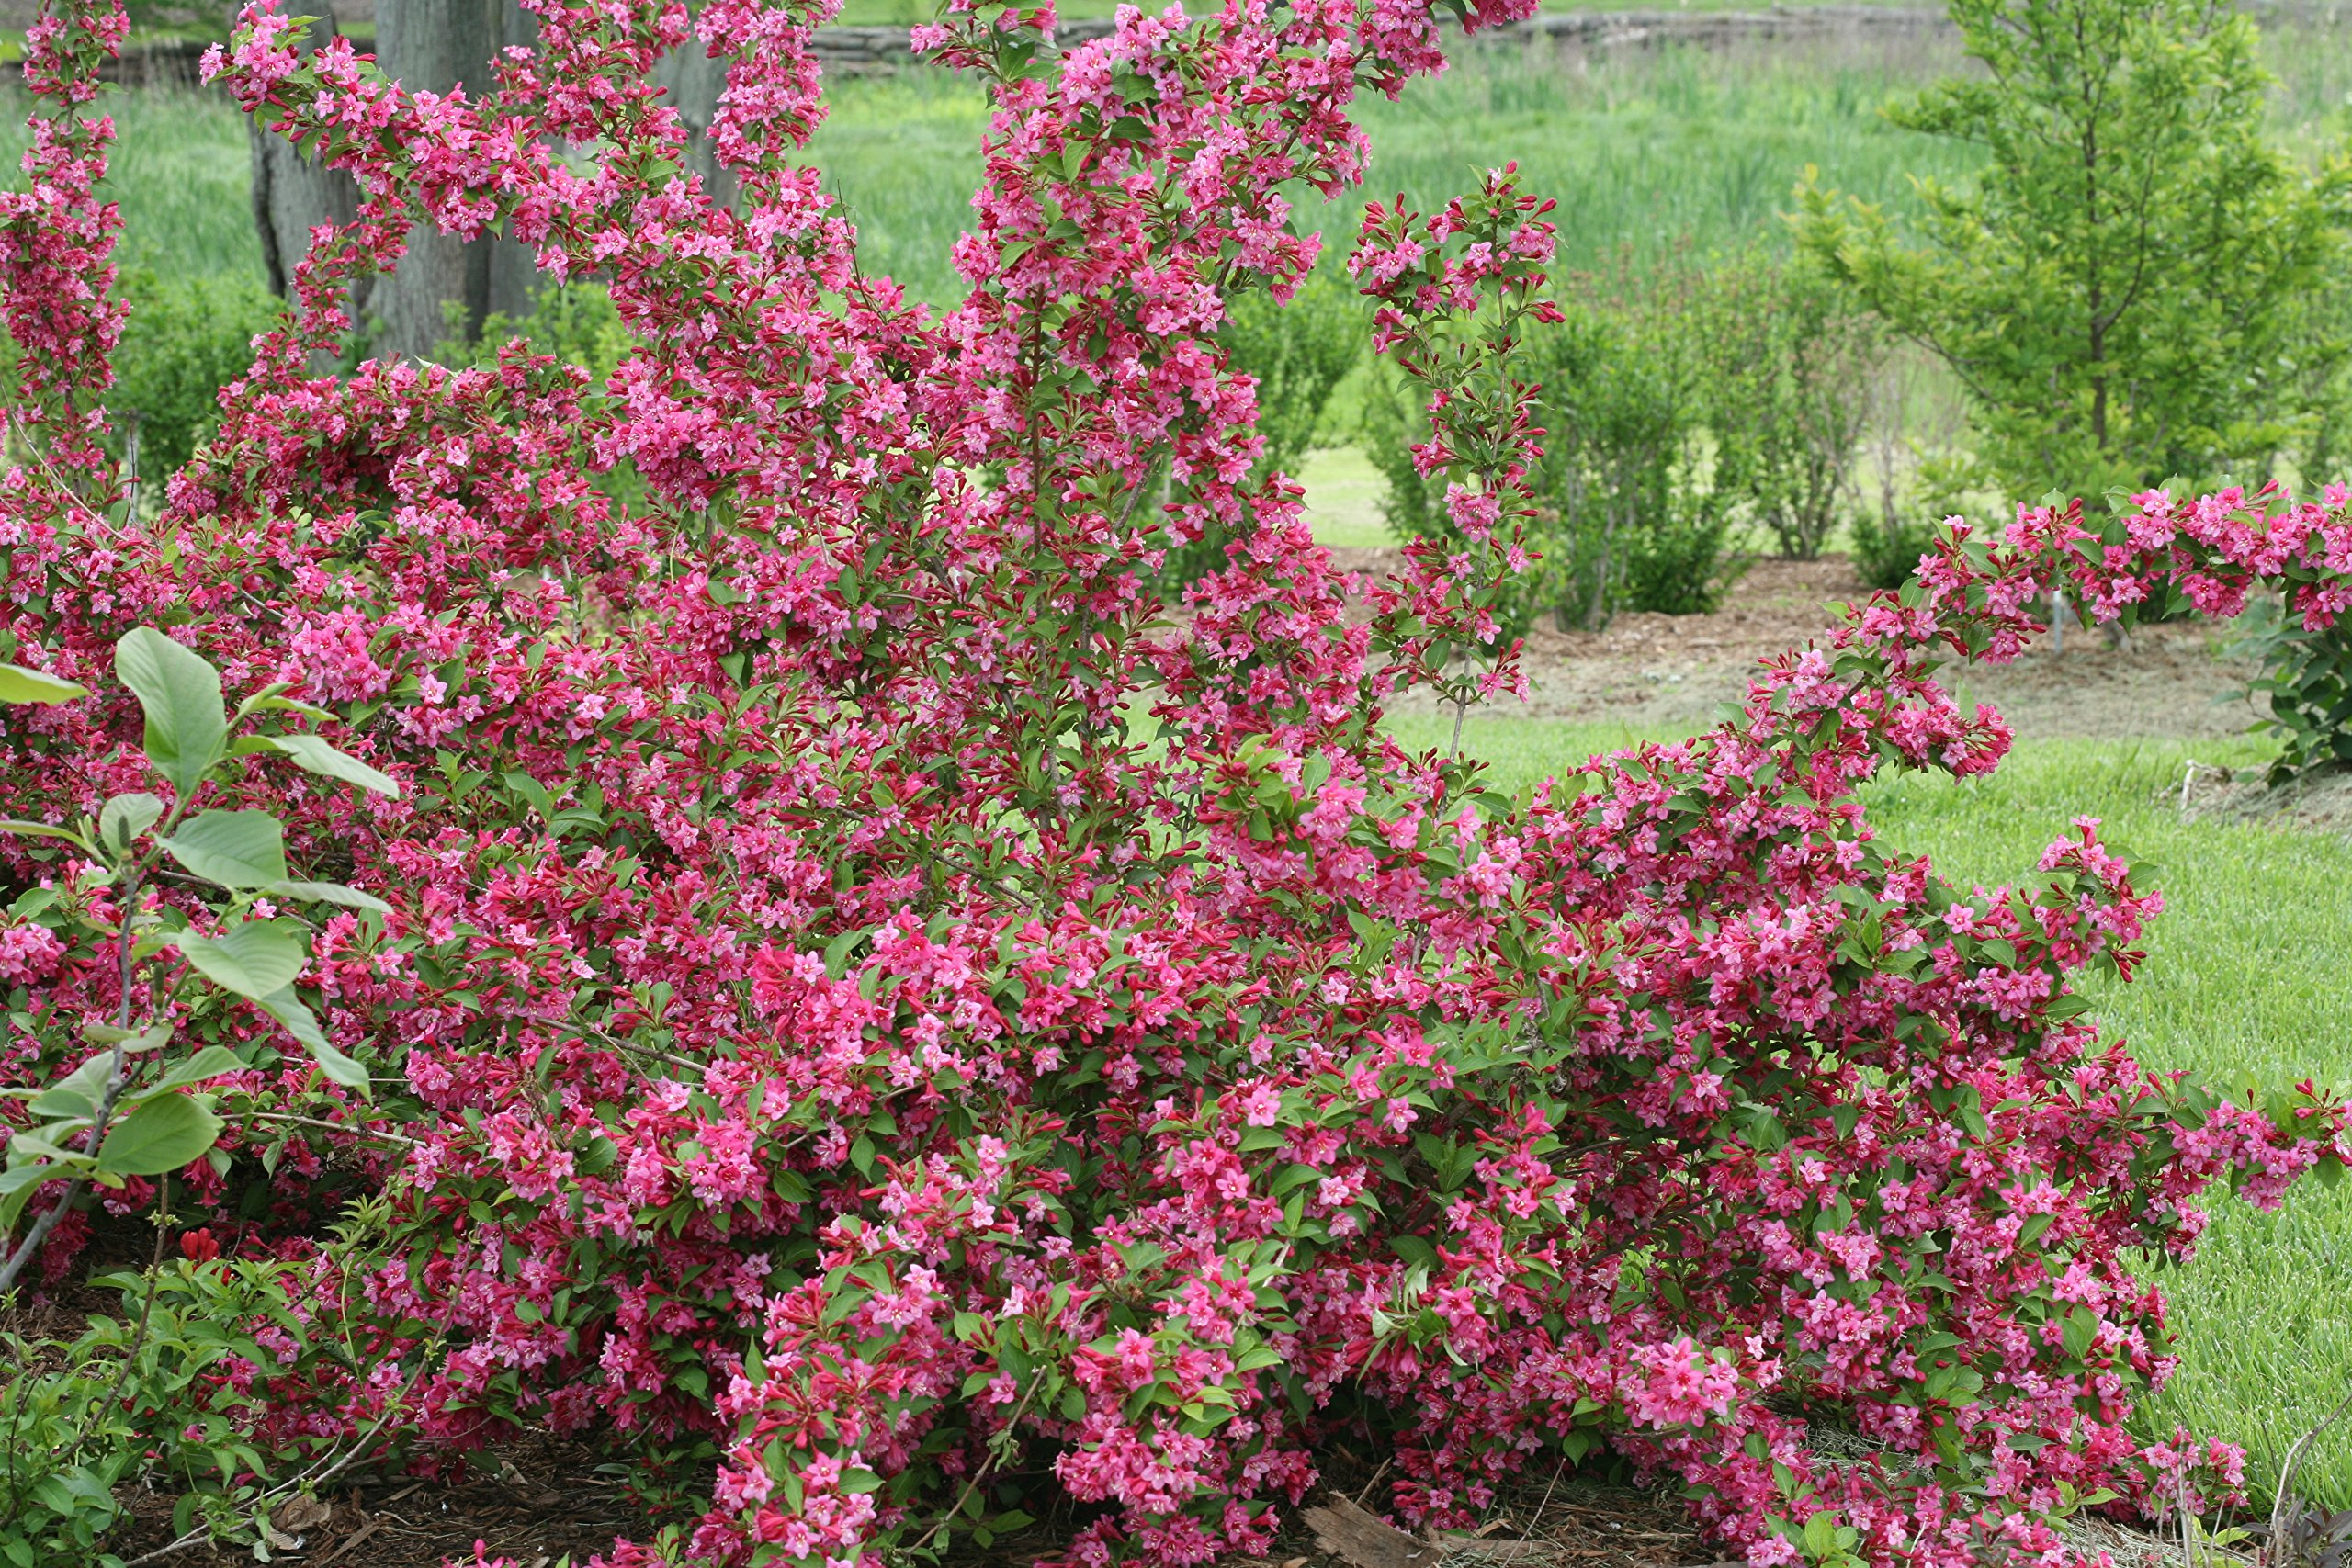 Proven Winners - Weigela Flordia Sonic Bloom Pink (Reblooming Weigela) Shrub, Pink Flowers, #3 - Size Container by Green Promise Farms (Image #2)